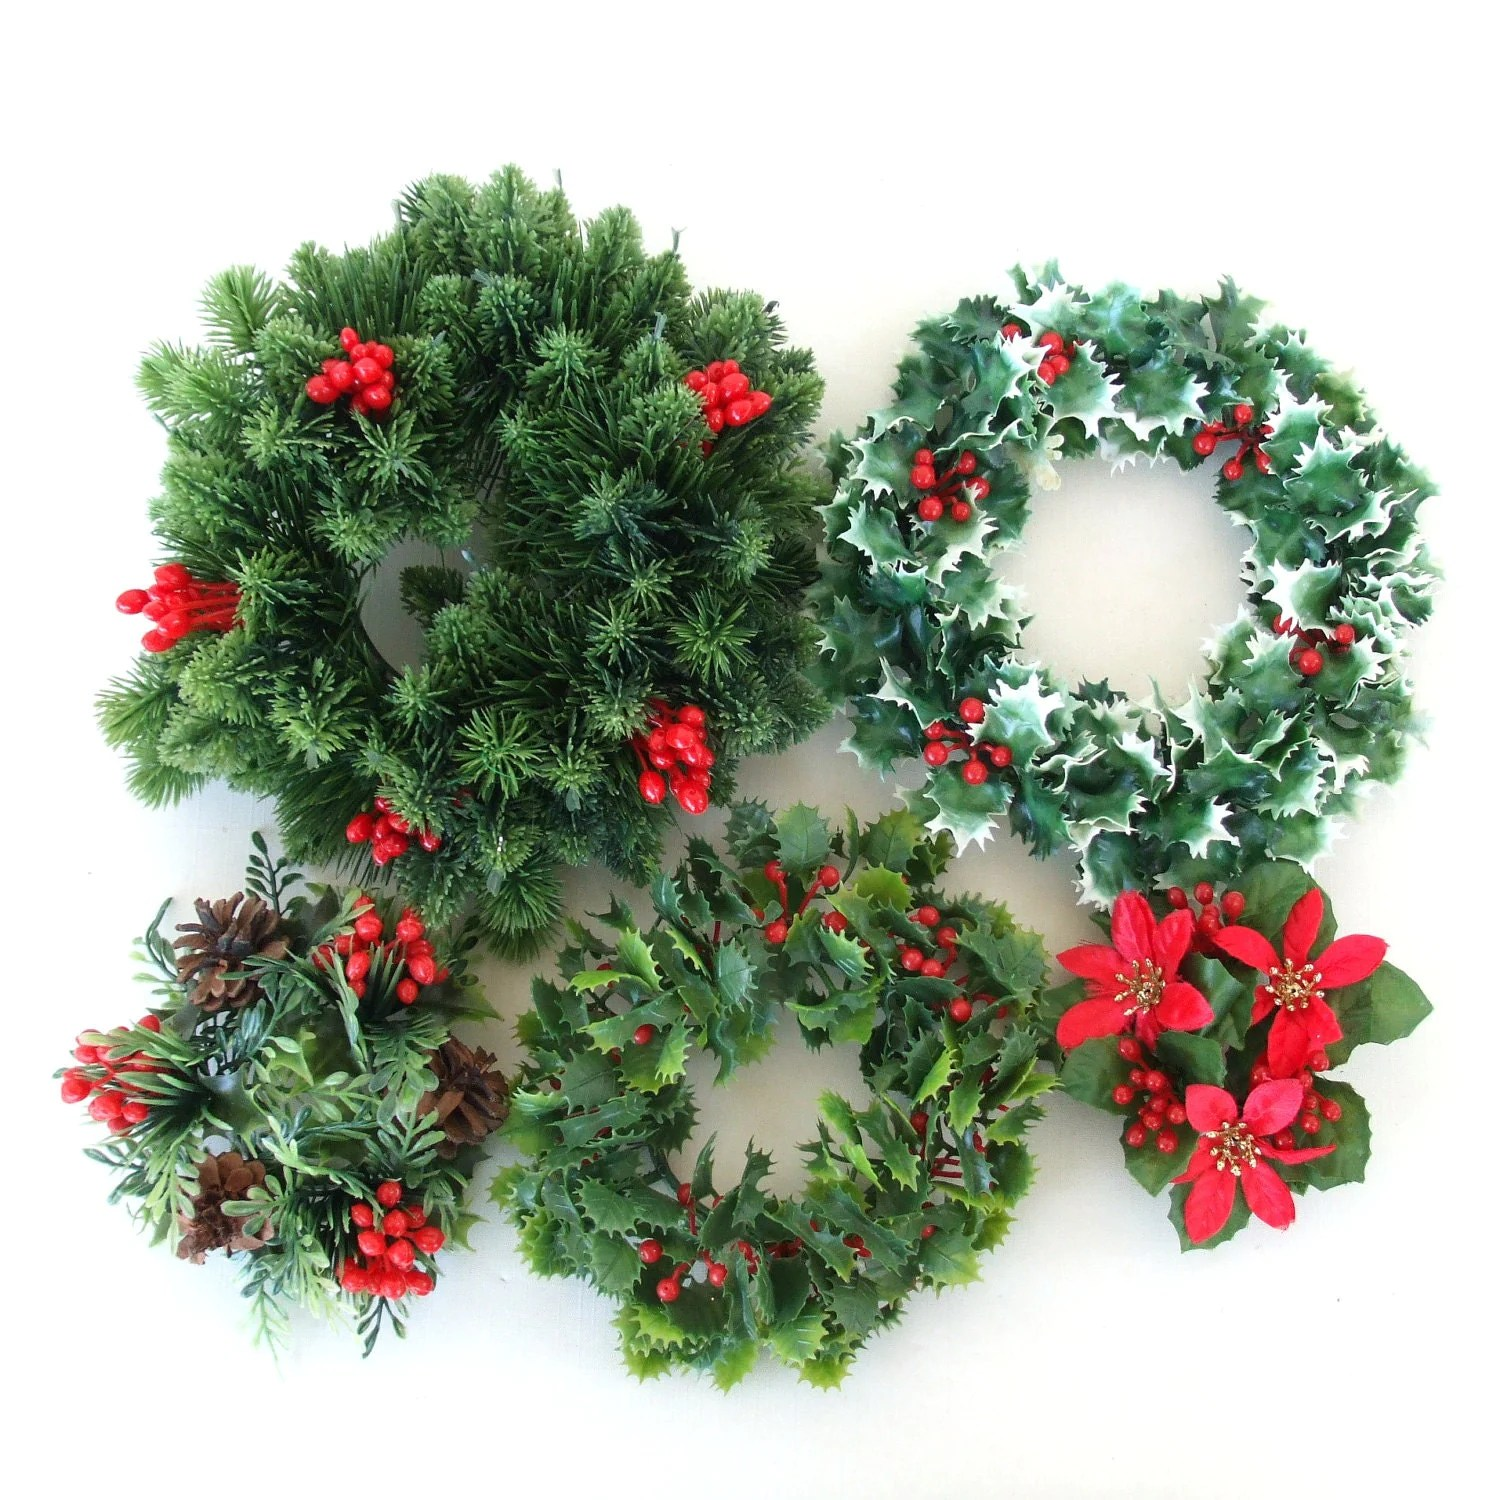 Fake Christmas Wreath Holiday Candle Holders By